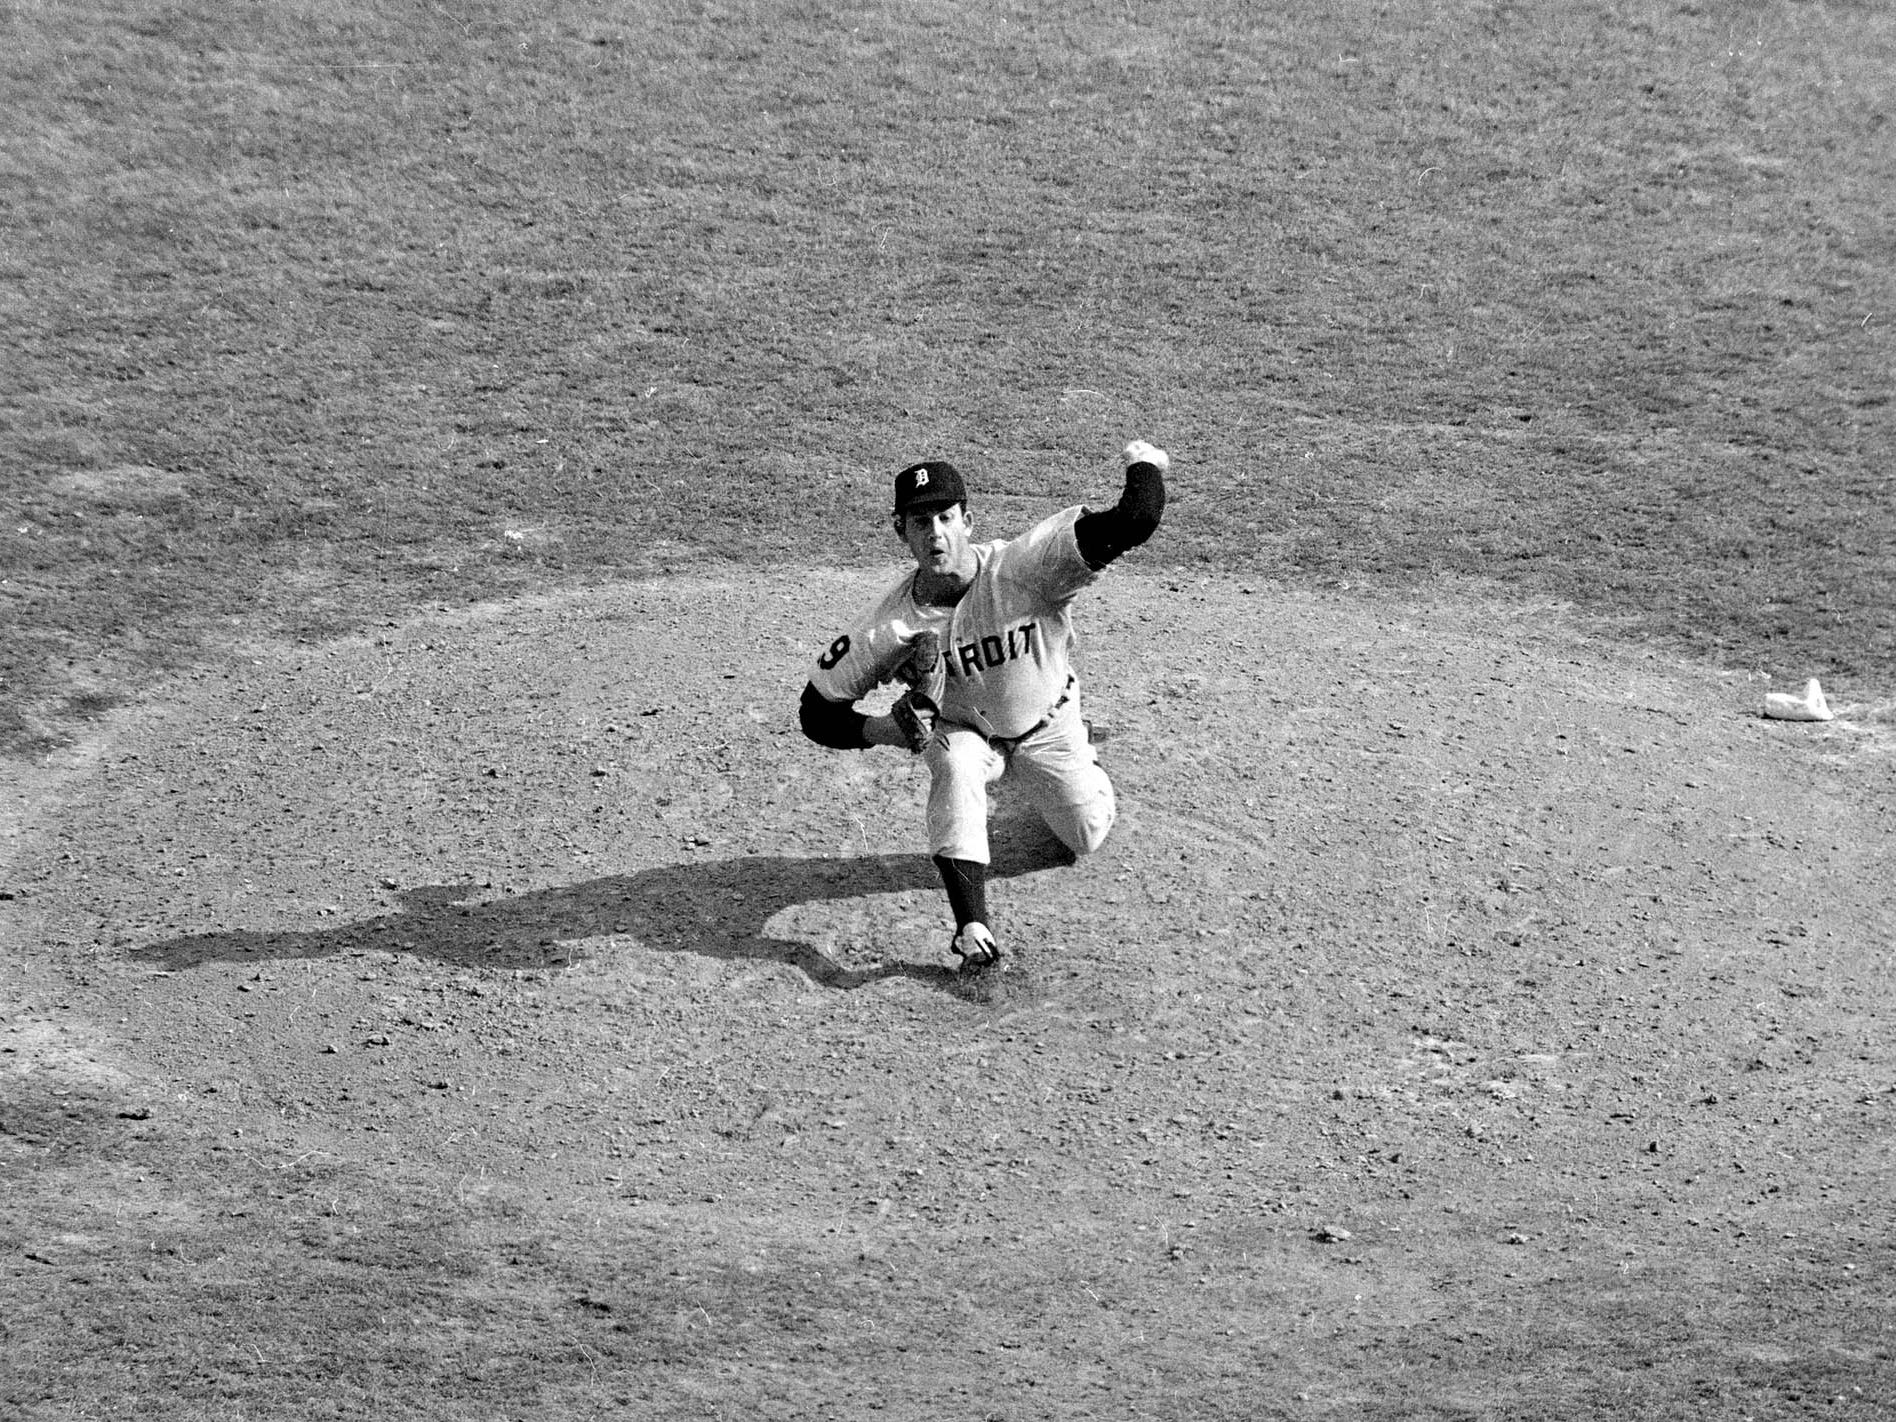 Detroit Tigers' Mickey Lolich is shown in action against the St. Louis Cardinals during the final game of the World Series, Oct. 10, 1968, at Busch Memorial Stadium.